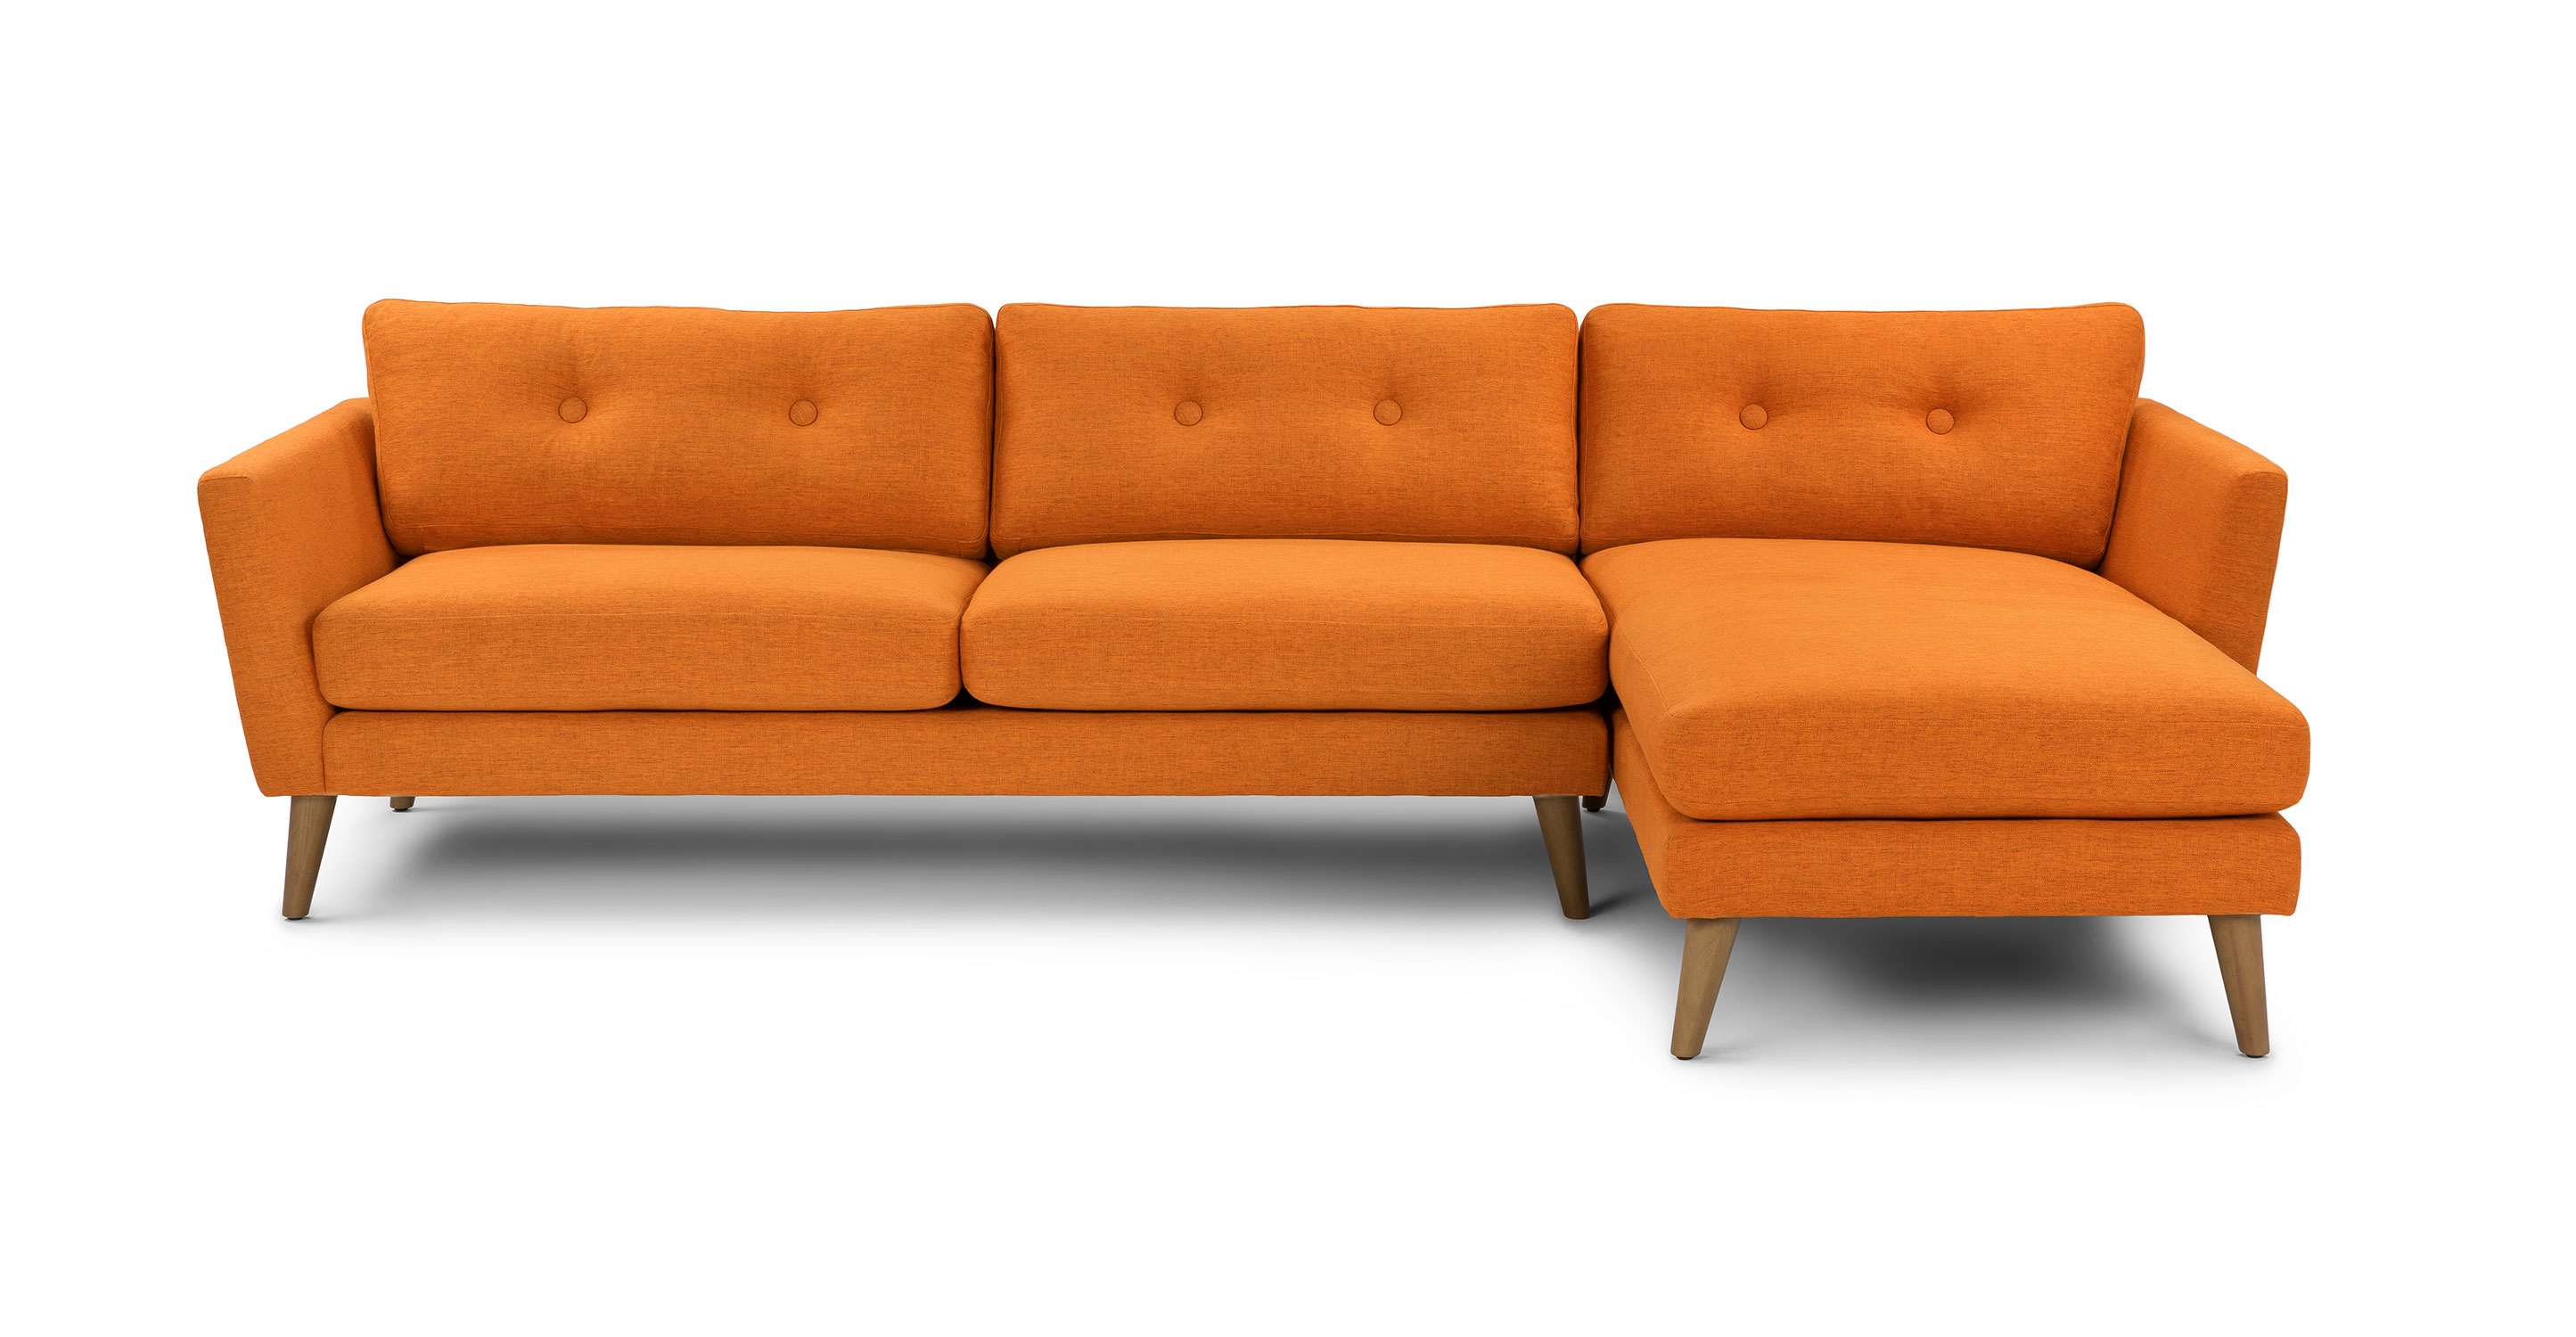 down sofas canada trundle mattress sleeper sofa emil papaya orange right sectional sectionals article